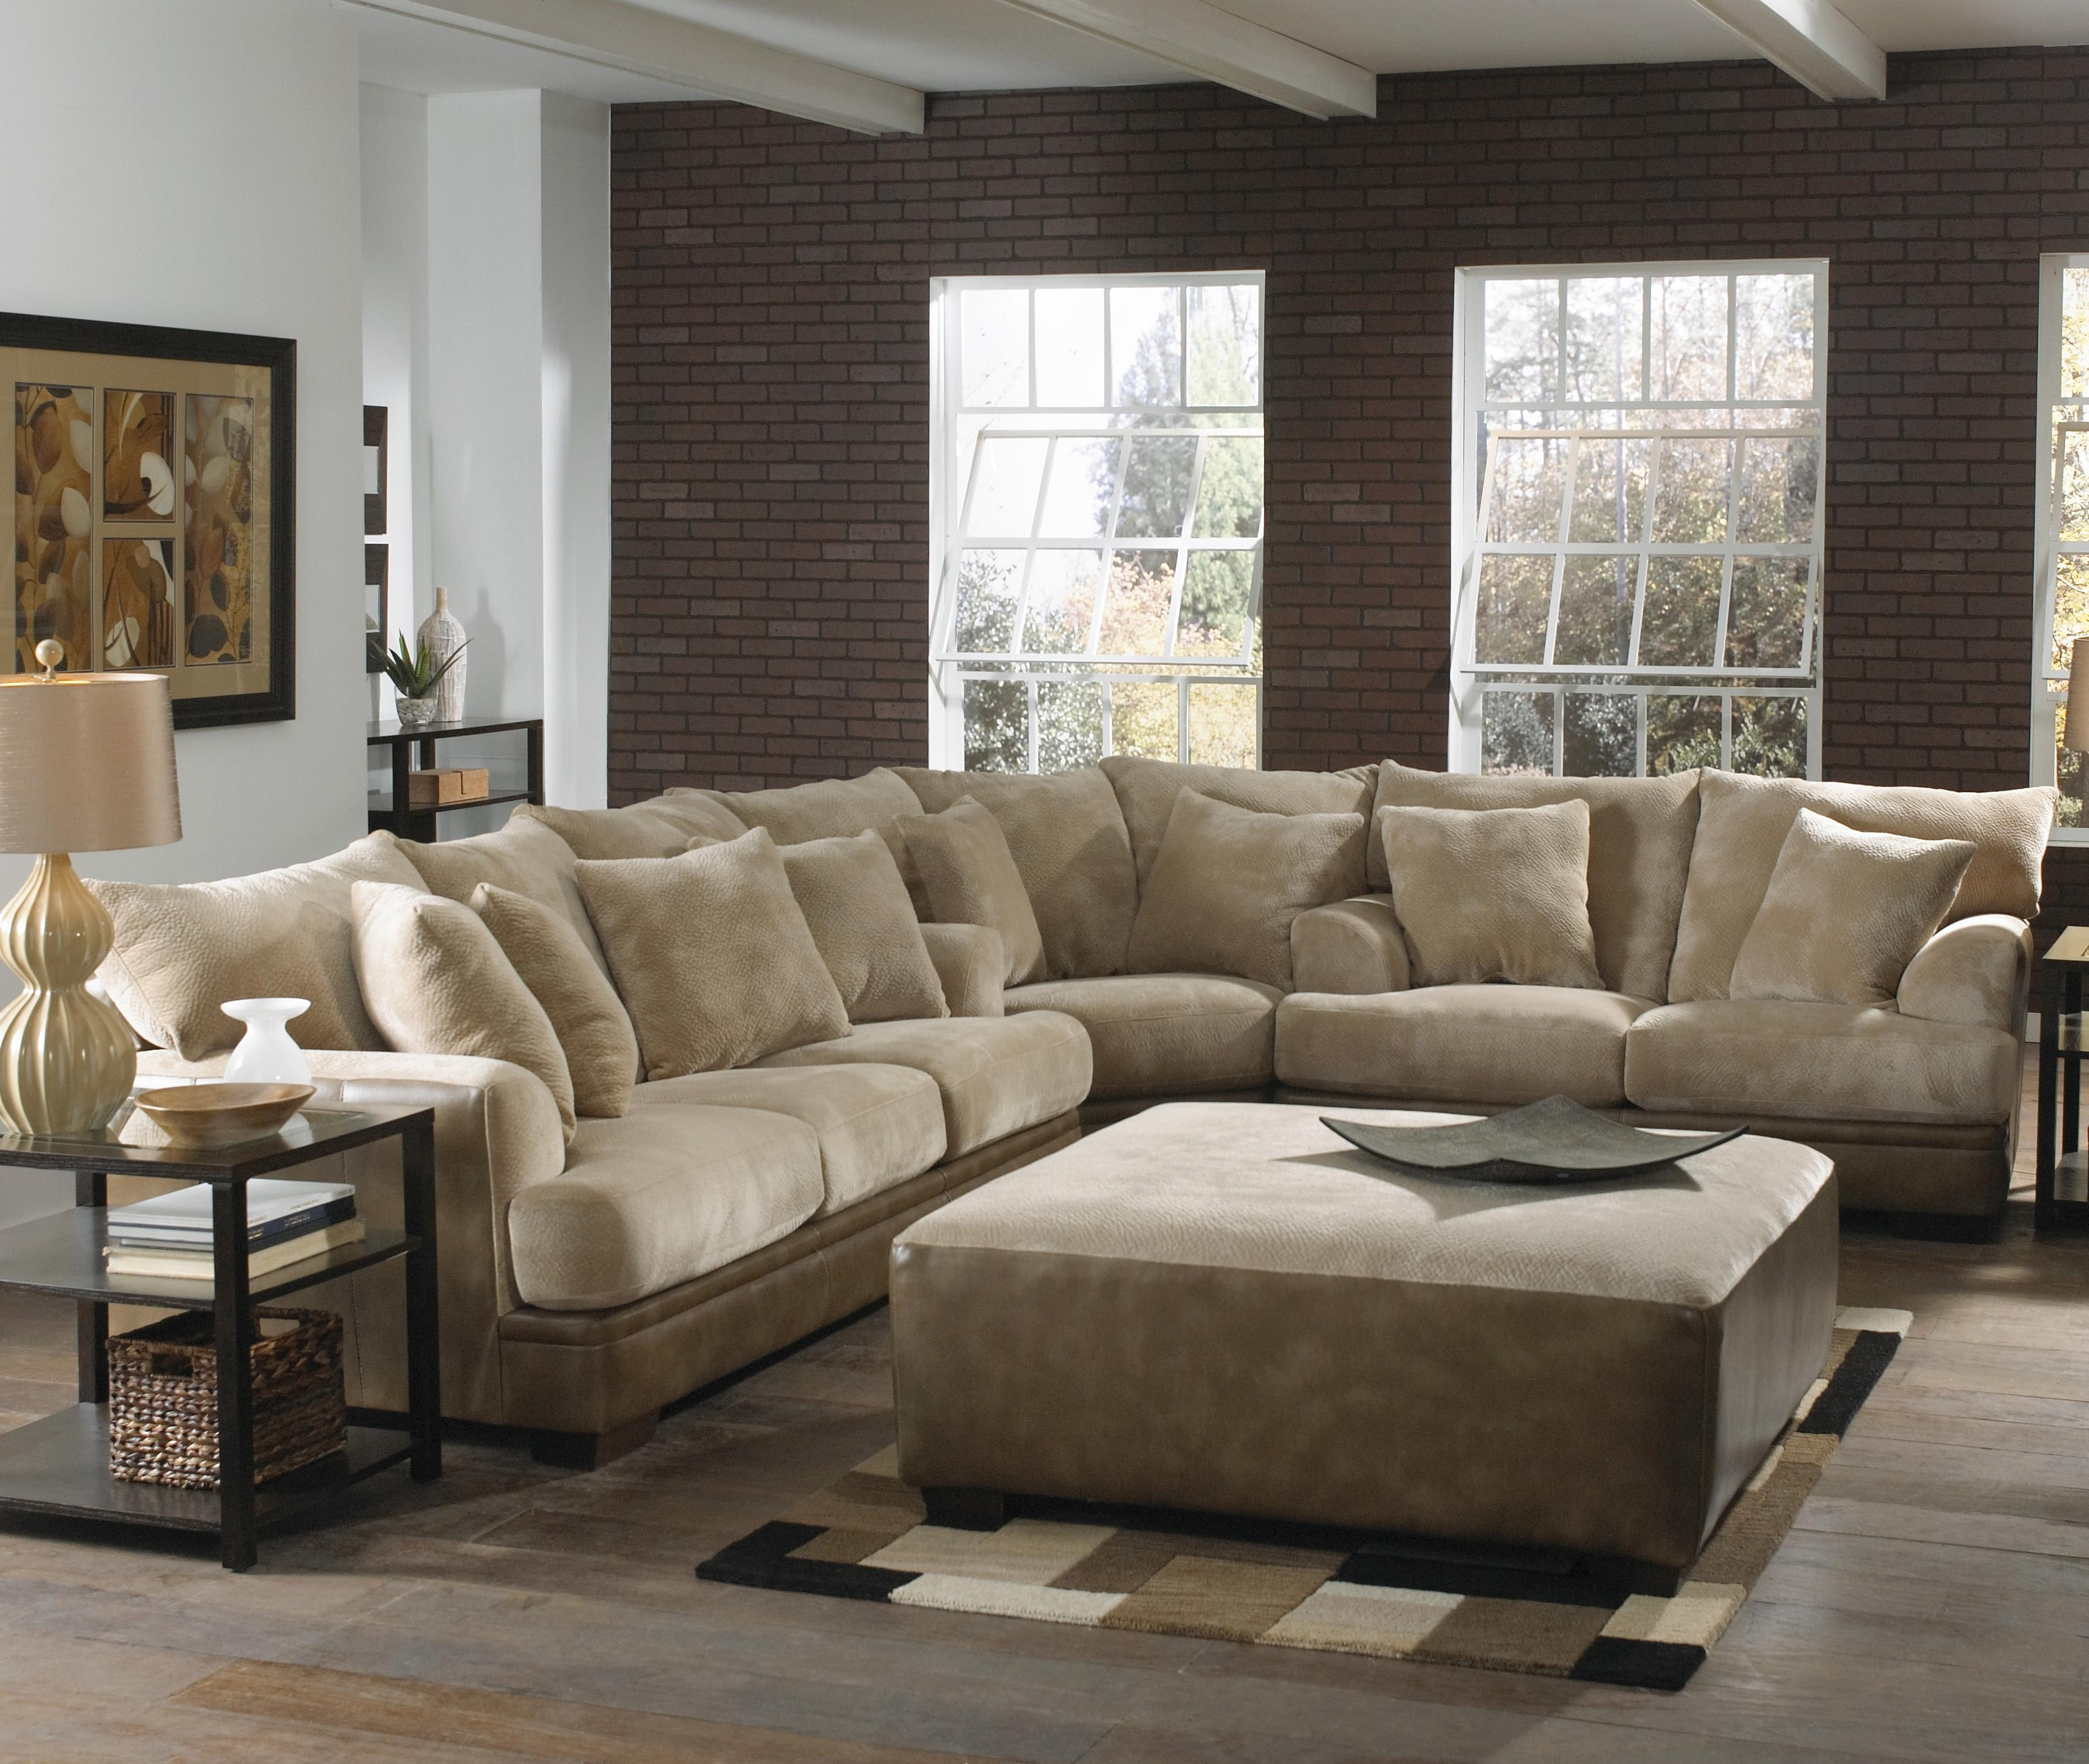 Marvelous Large Sectional Sofa With Ottoman For Your Sofas Amazing Regarding Sectional Couches With Large Ottoman (View 7 of 10)